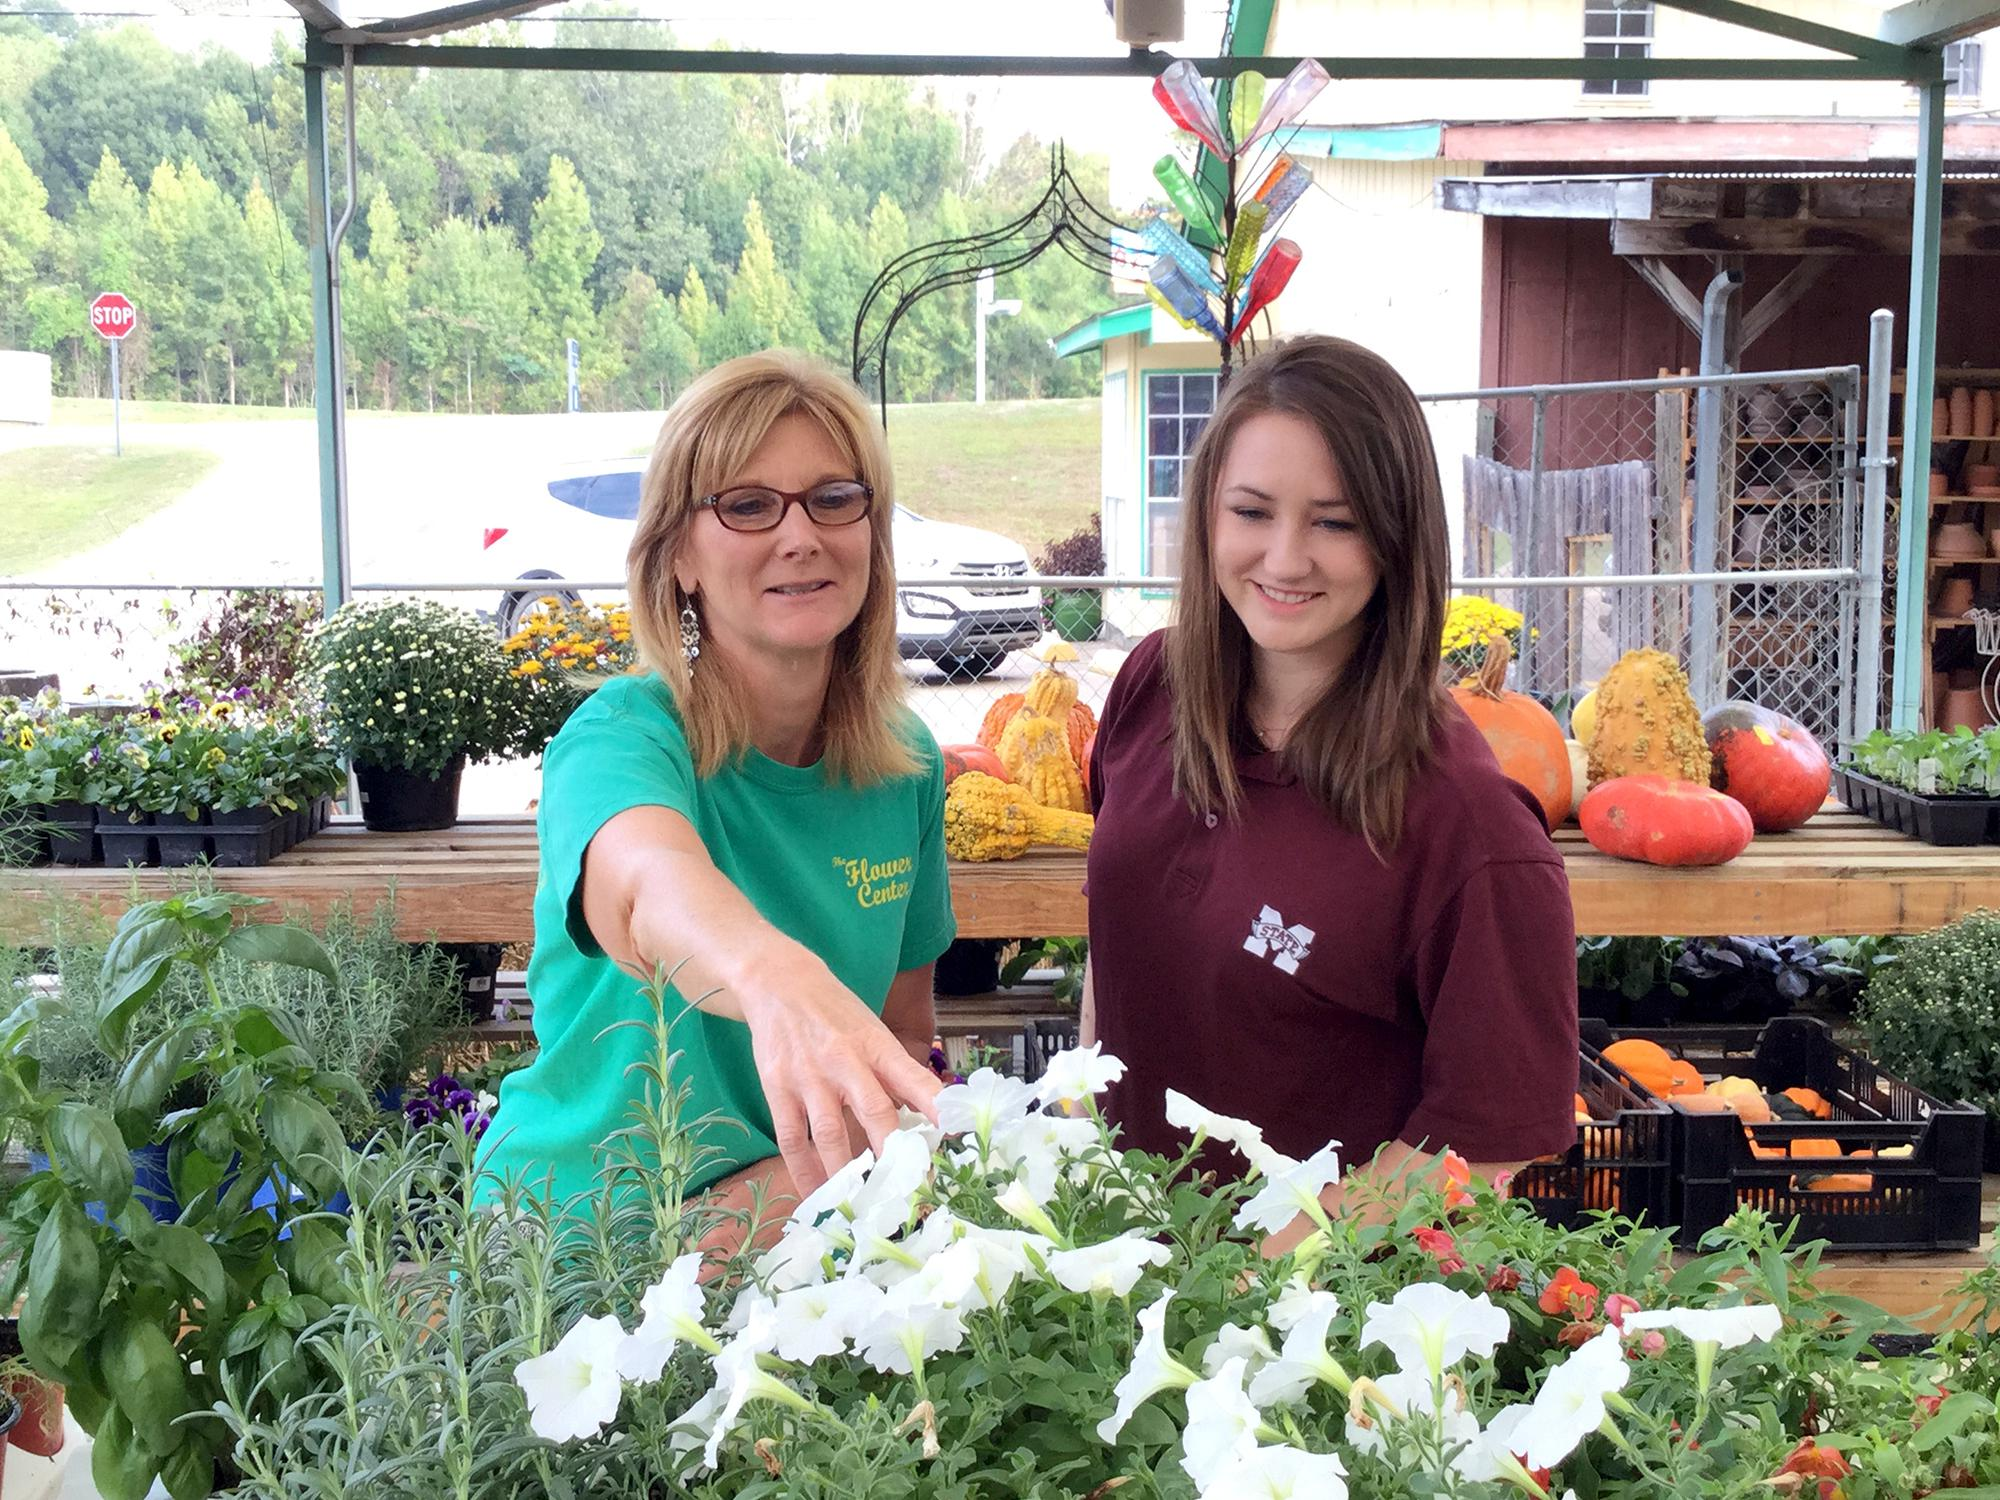 Libby Beard, co-owner of The Flower Center in Vicksburg, Mississippi, left, and Anna McCain, Warren County Extension agent, look over some of the fall bedding flowers available on Oct. 7, 2015. (Submitted photo)